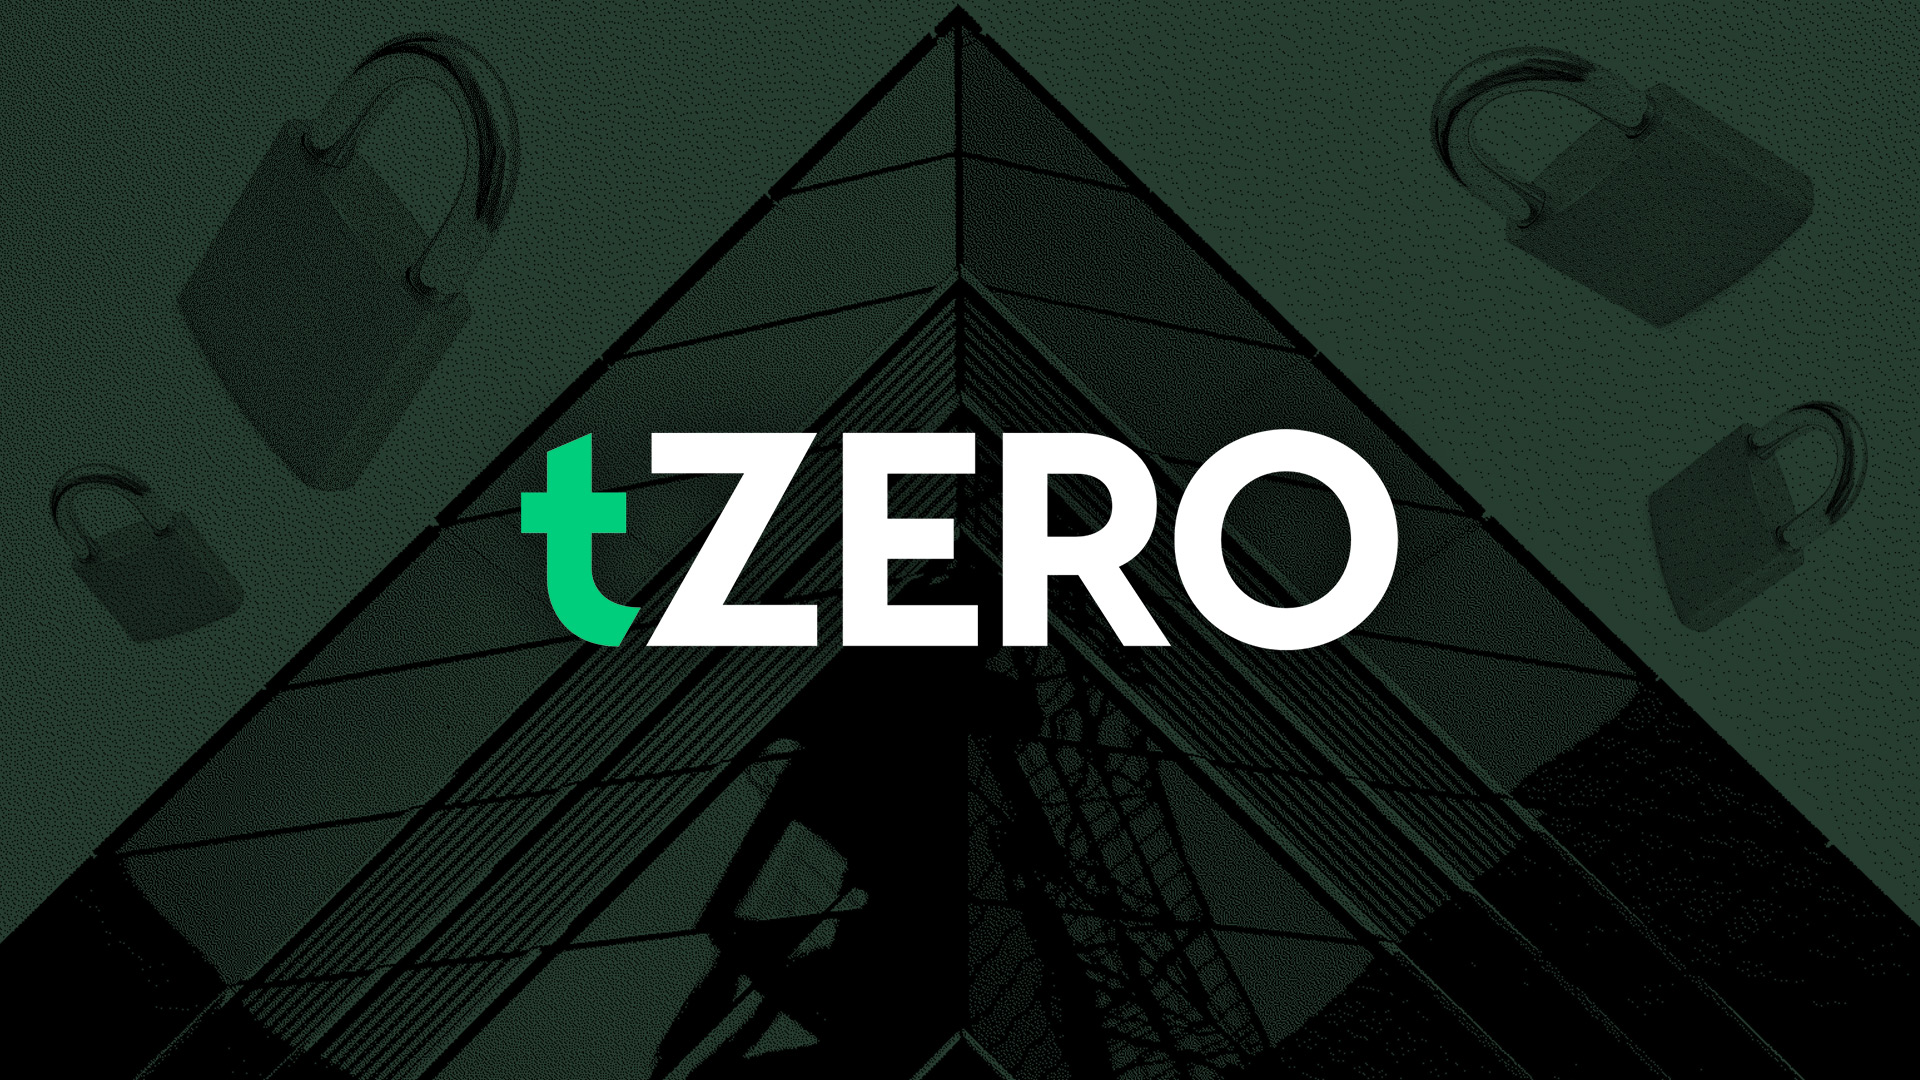 SEC investigation into tZERO's token sale is 'almost dormant